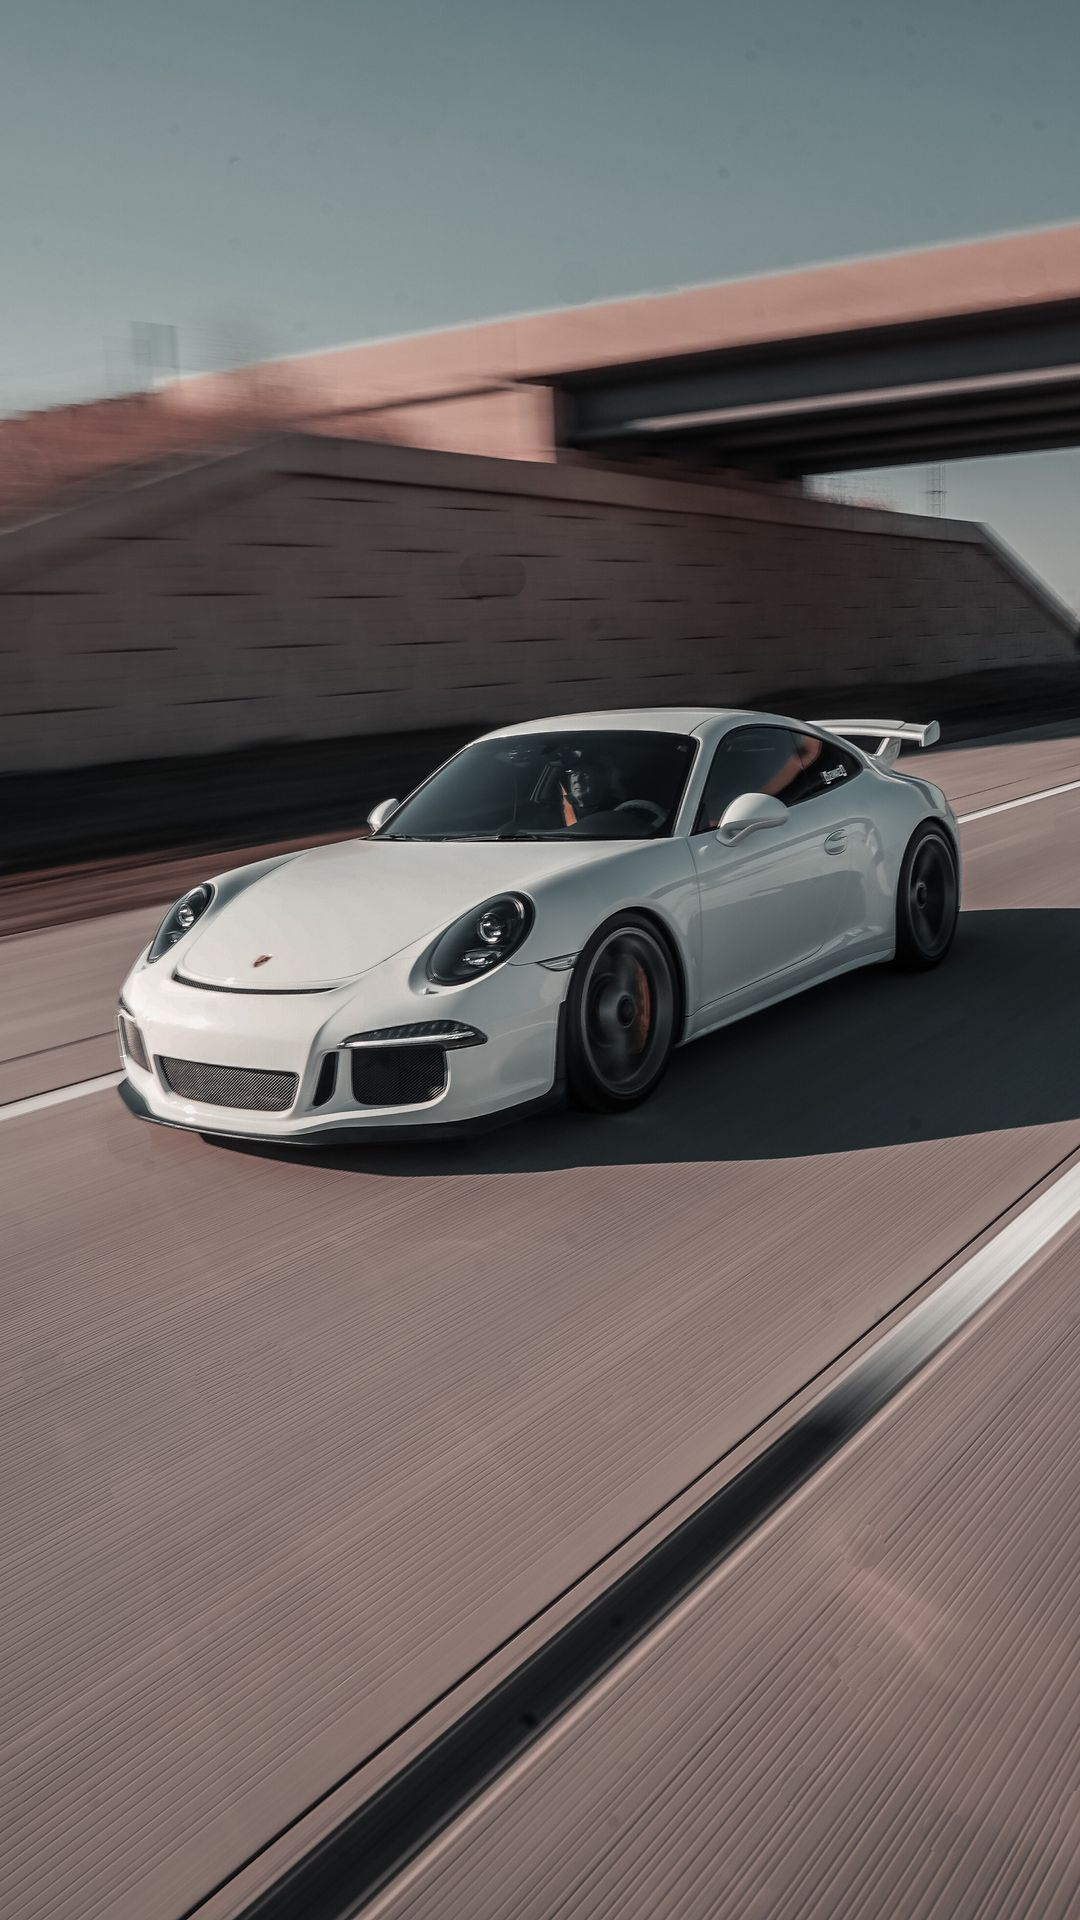 New Porsche Car Wallpapers Free Download for Phone & iPhone